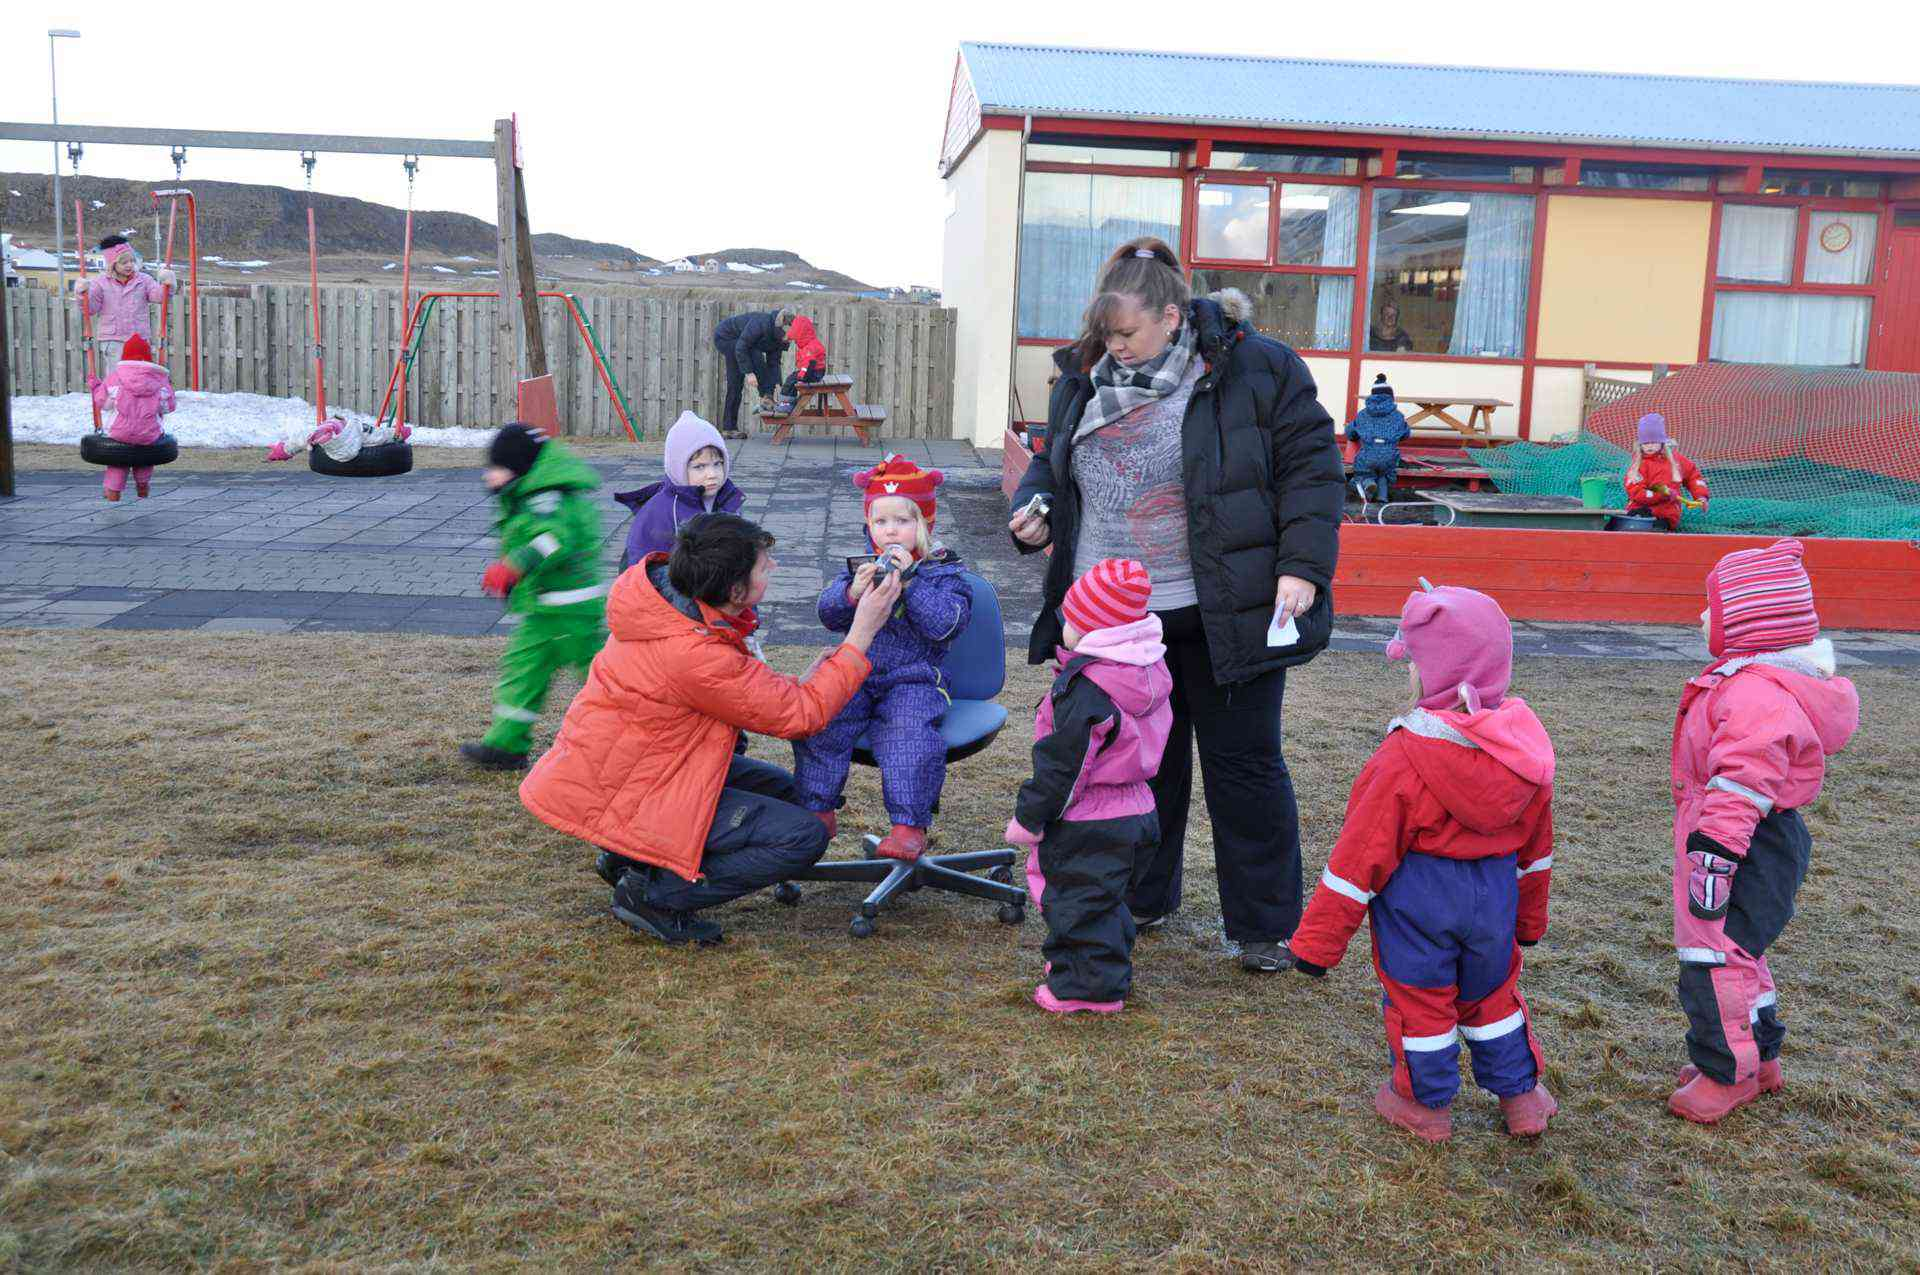 Iceland, a video for the 35th anniversary of preschool Barnabol